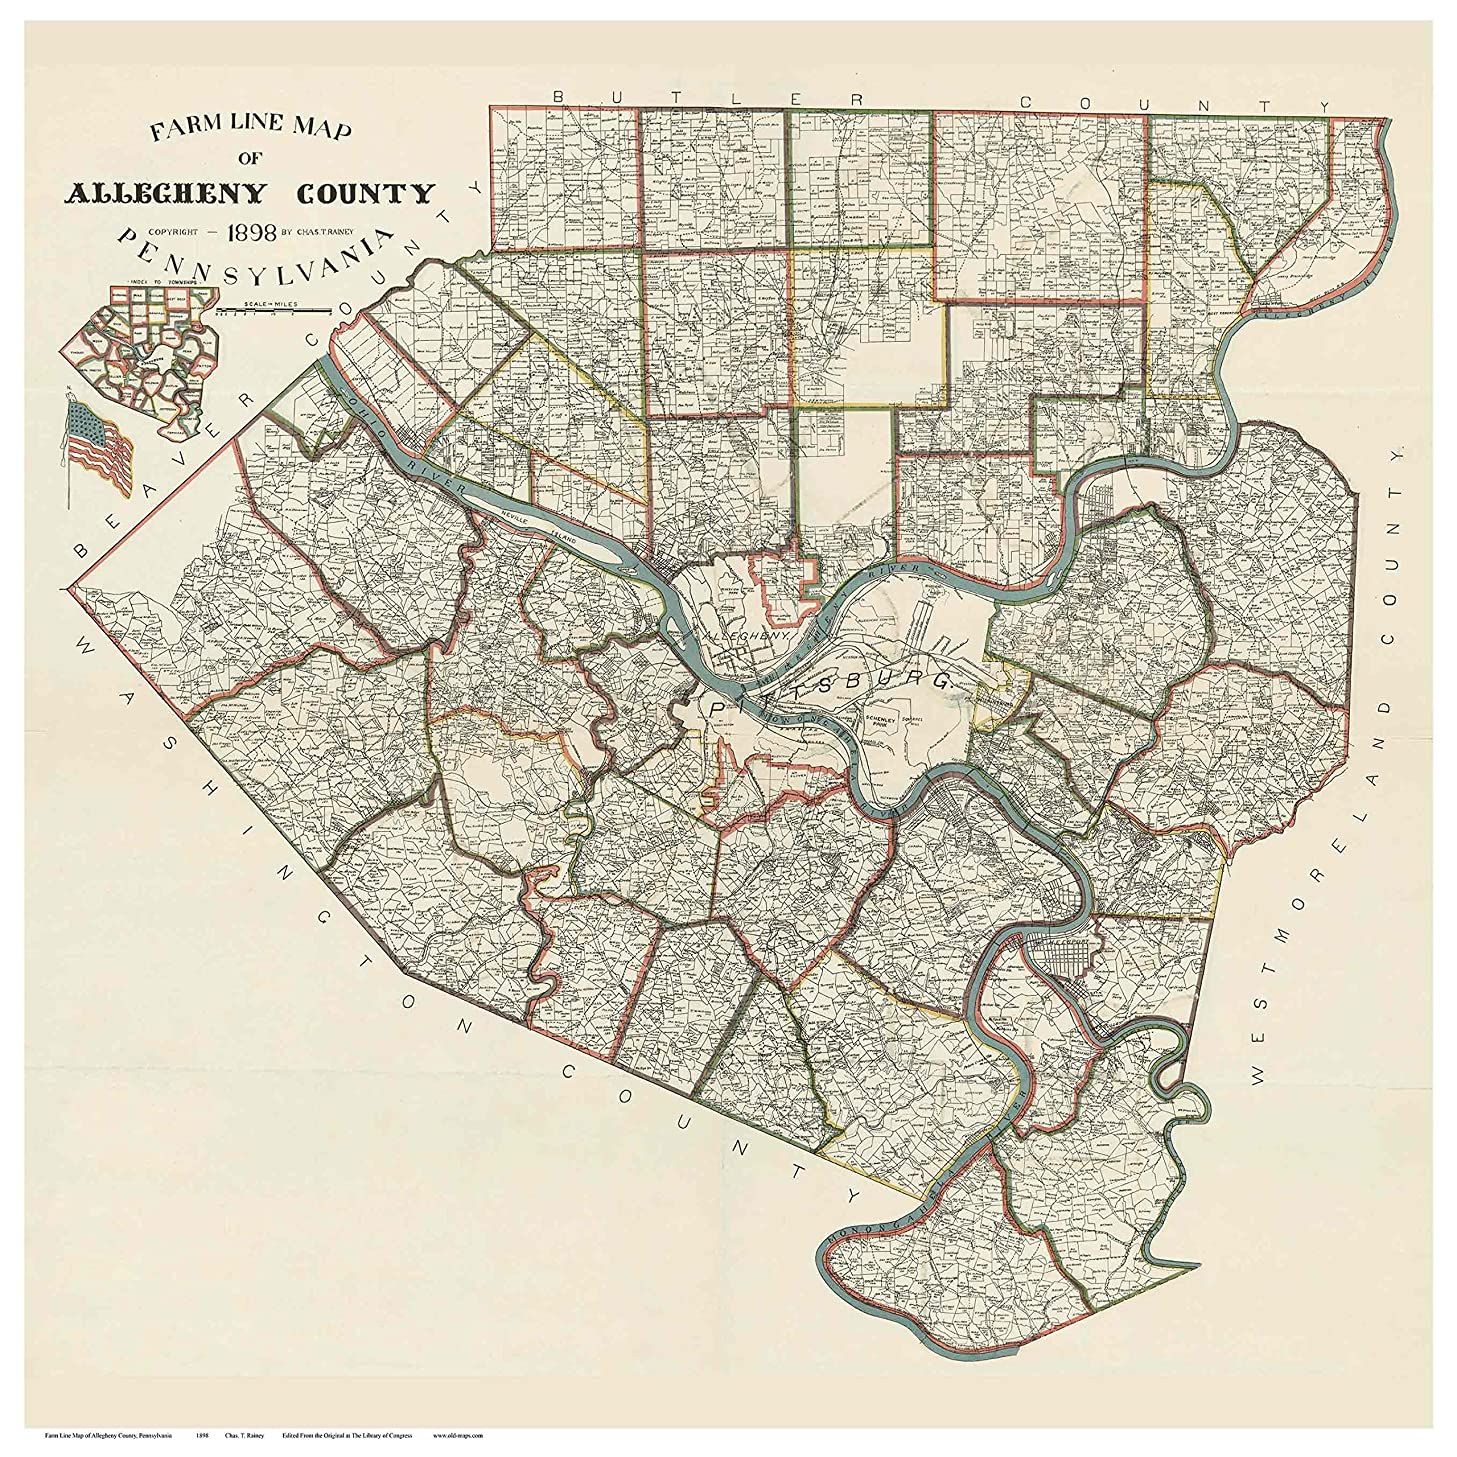 Allegheny County Pennsylvania 1898 - Wall Map with Homeowner Names - Old Map Reprint